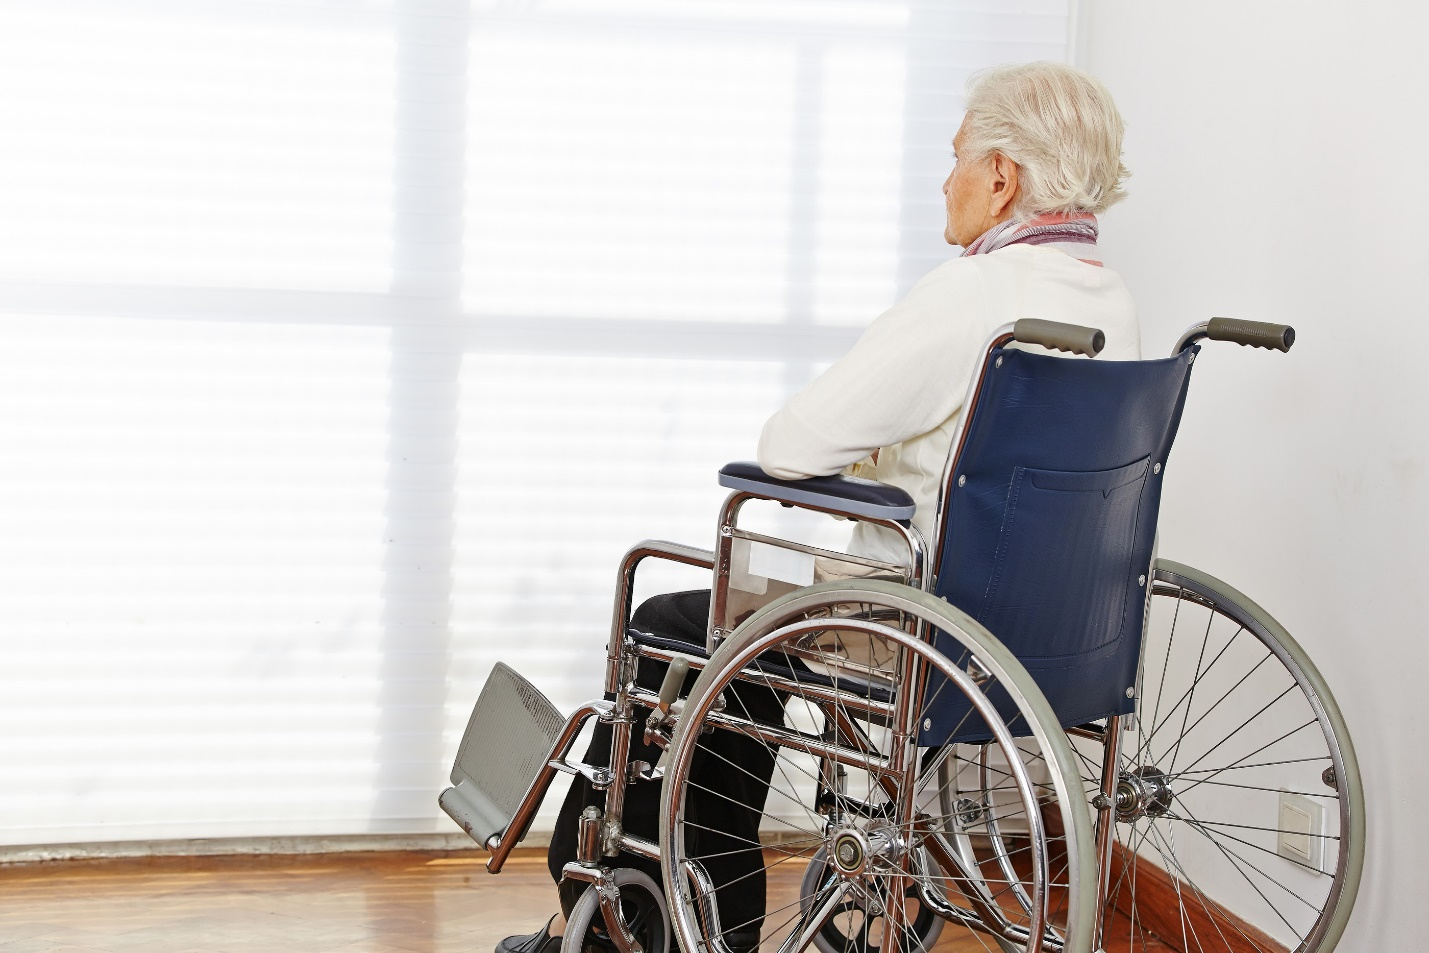 montgomery nursing home neglect attorneys - Montgomery Nursing Home Abuse Lawyer